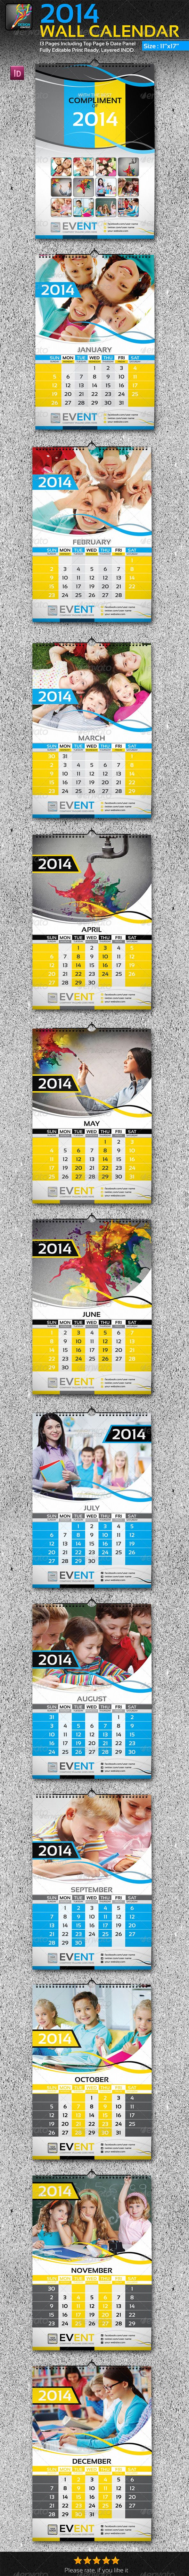 2014 Wall Calendar_13 Pages